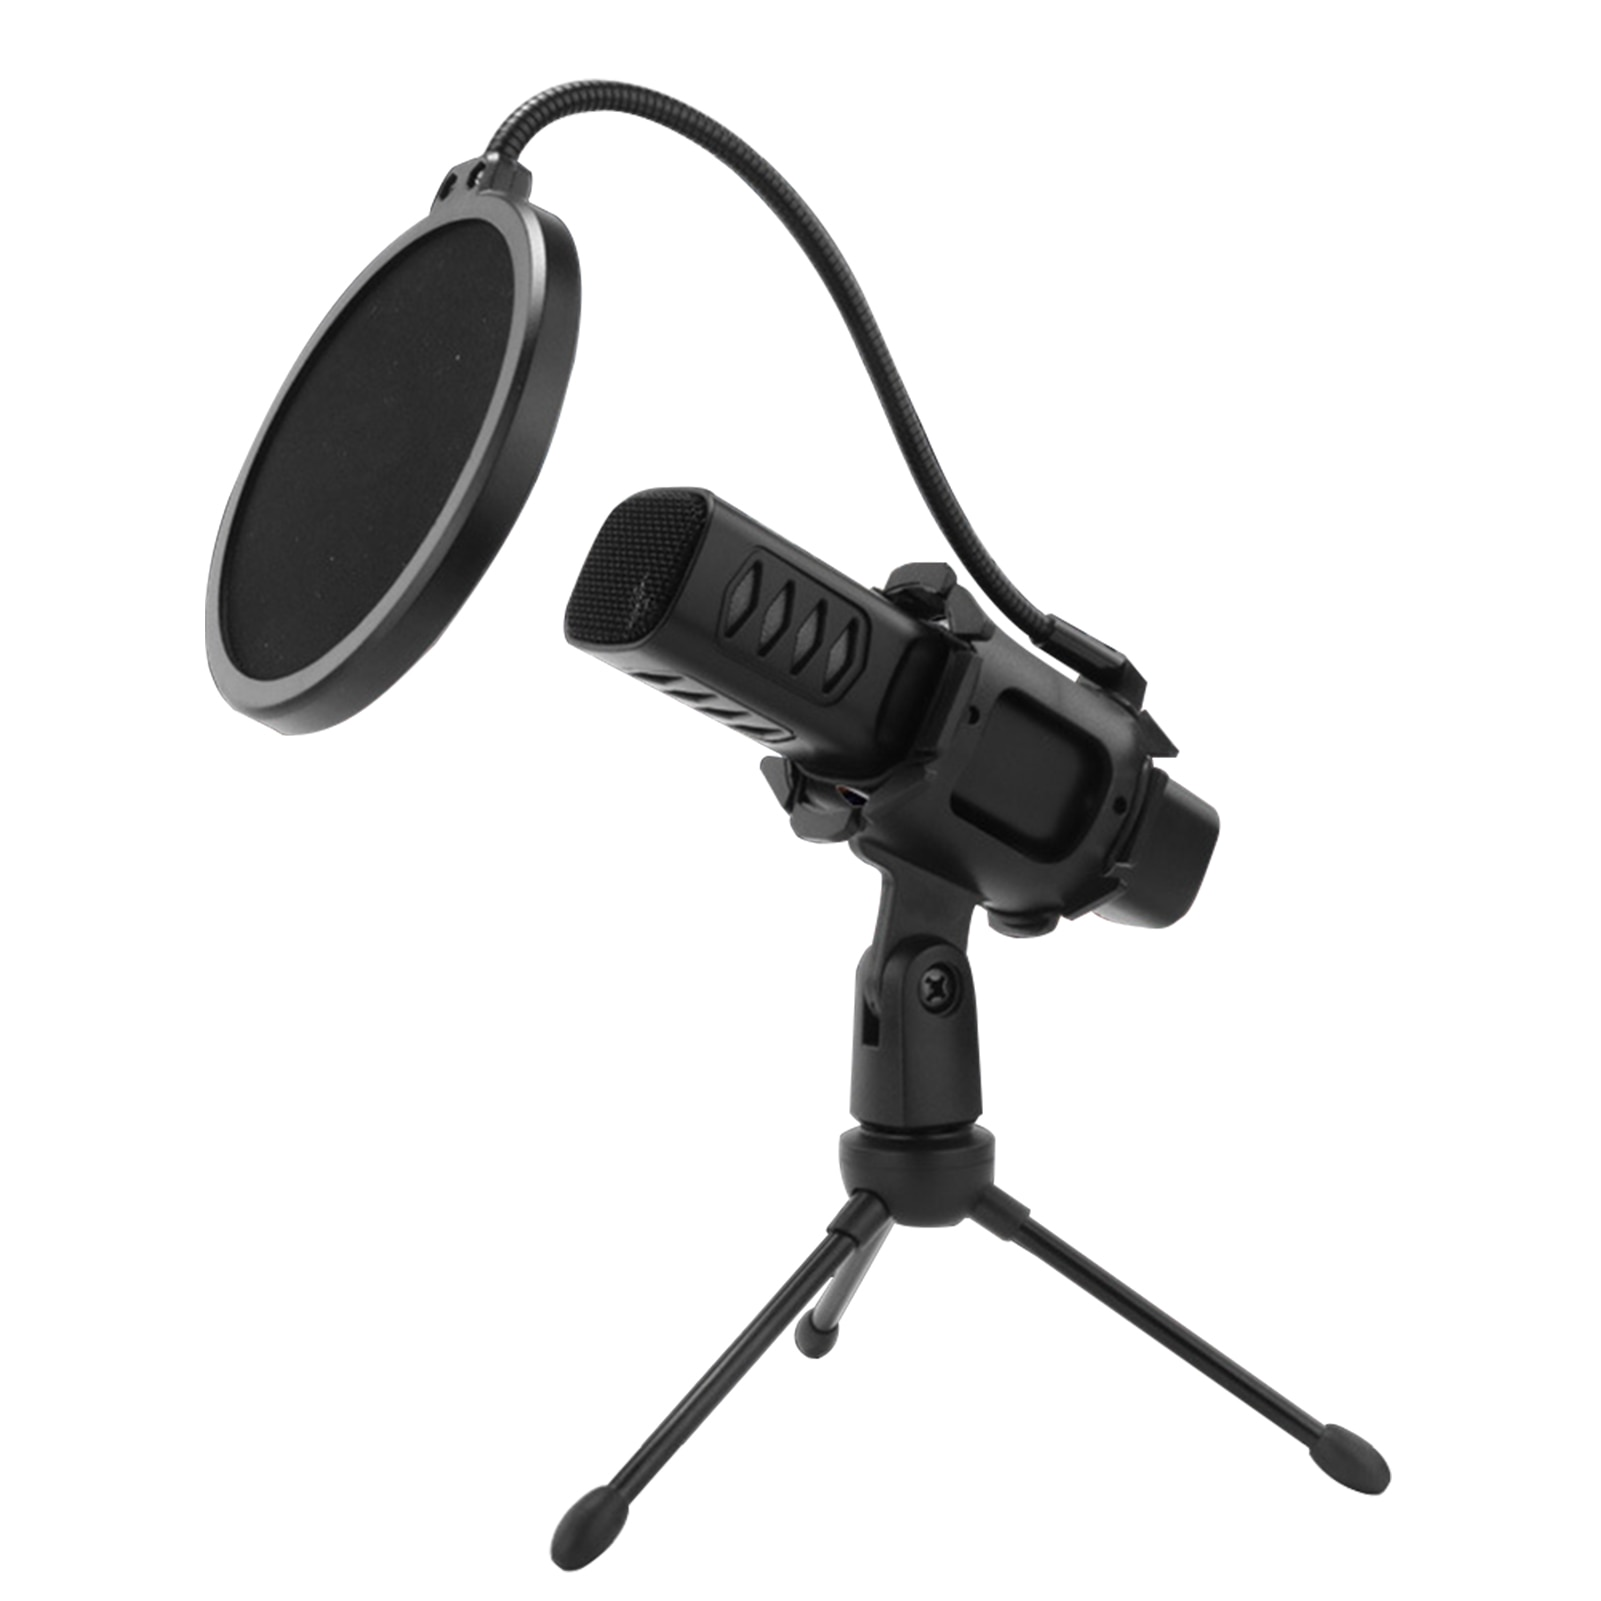 For Gaming Multifunctional With Tripod Stand USB Microphone Cardioid Condenser 90 degree adjustment enlarge